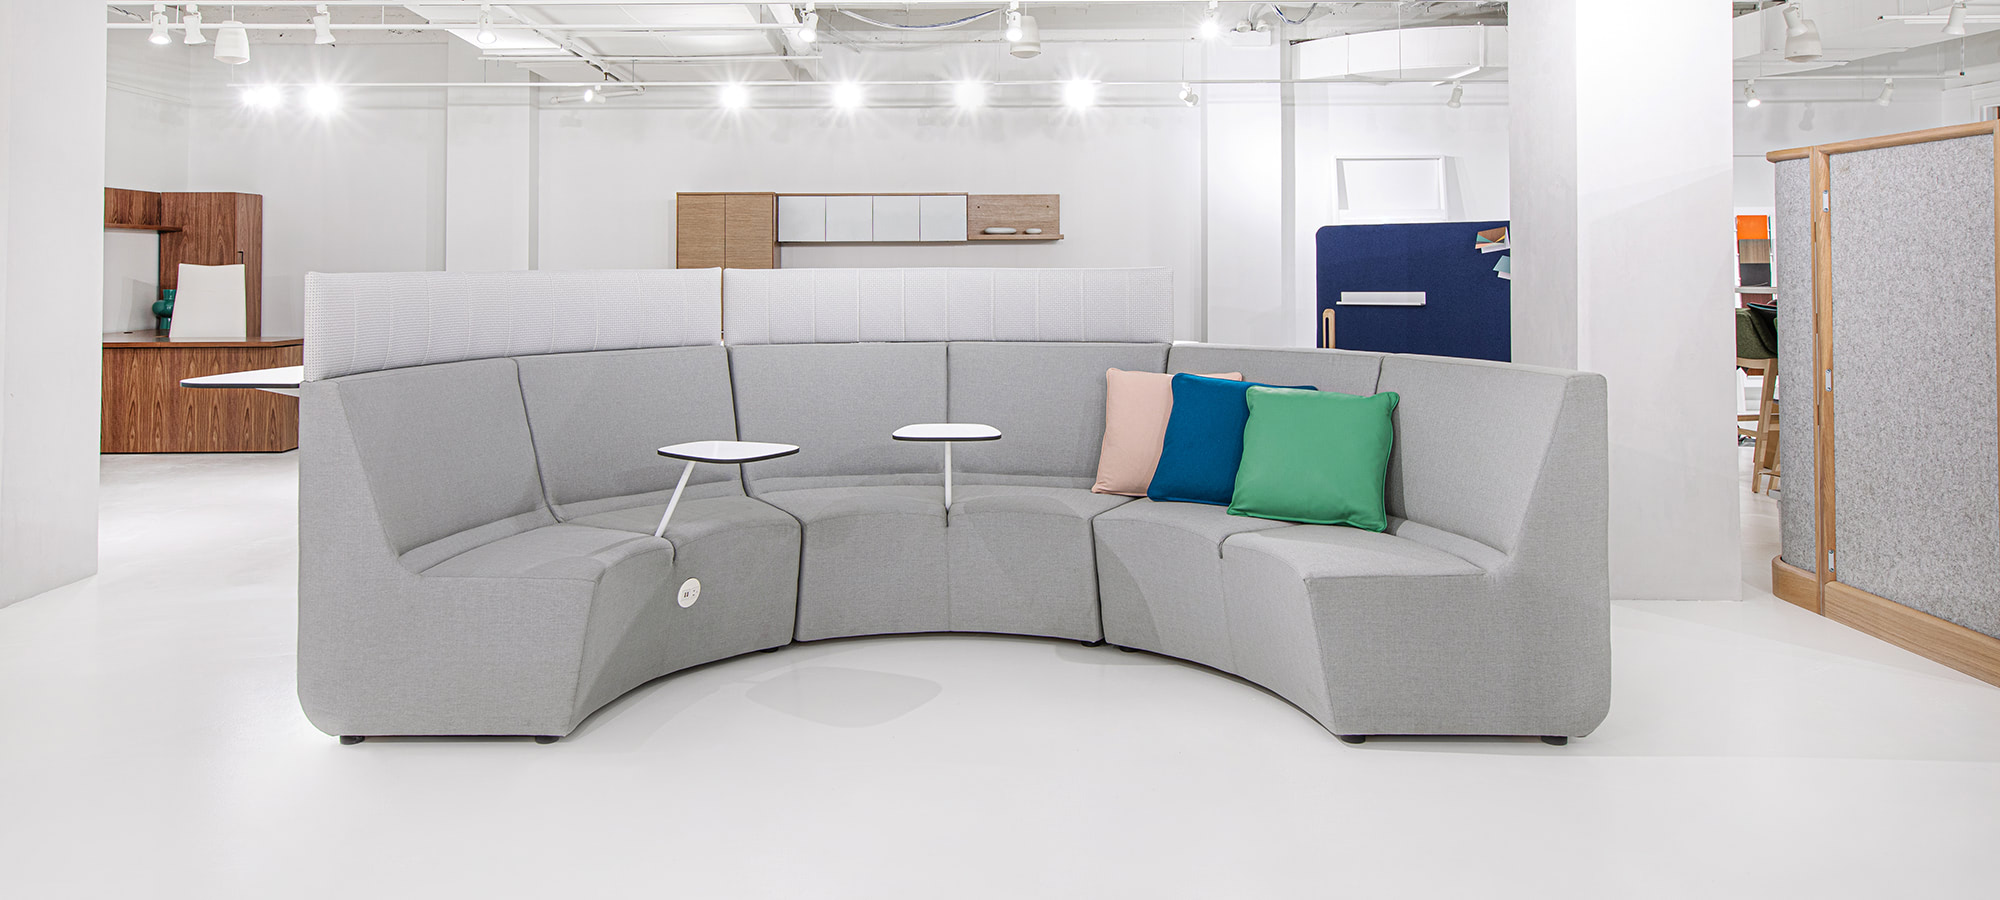 DARRAN Furniture - NeoCon 2019